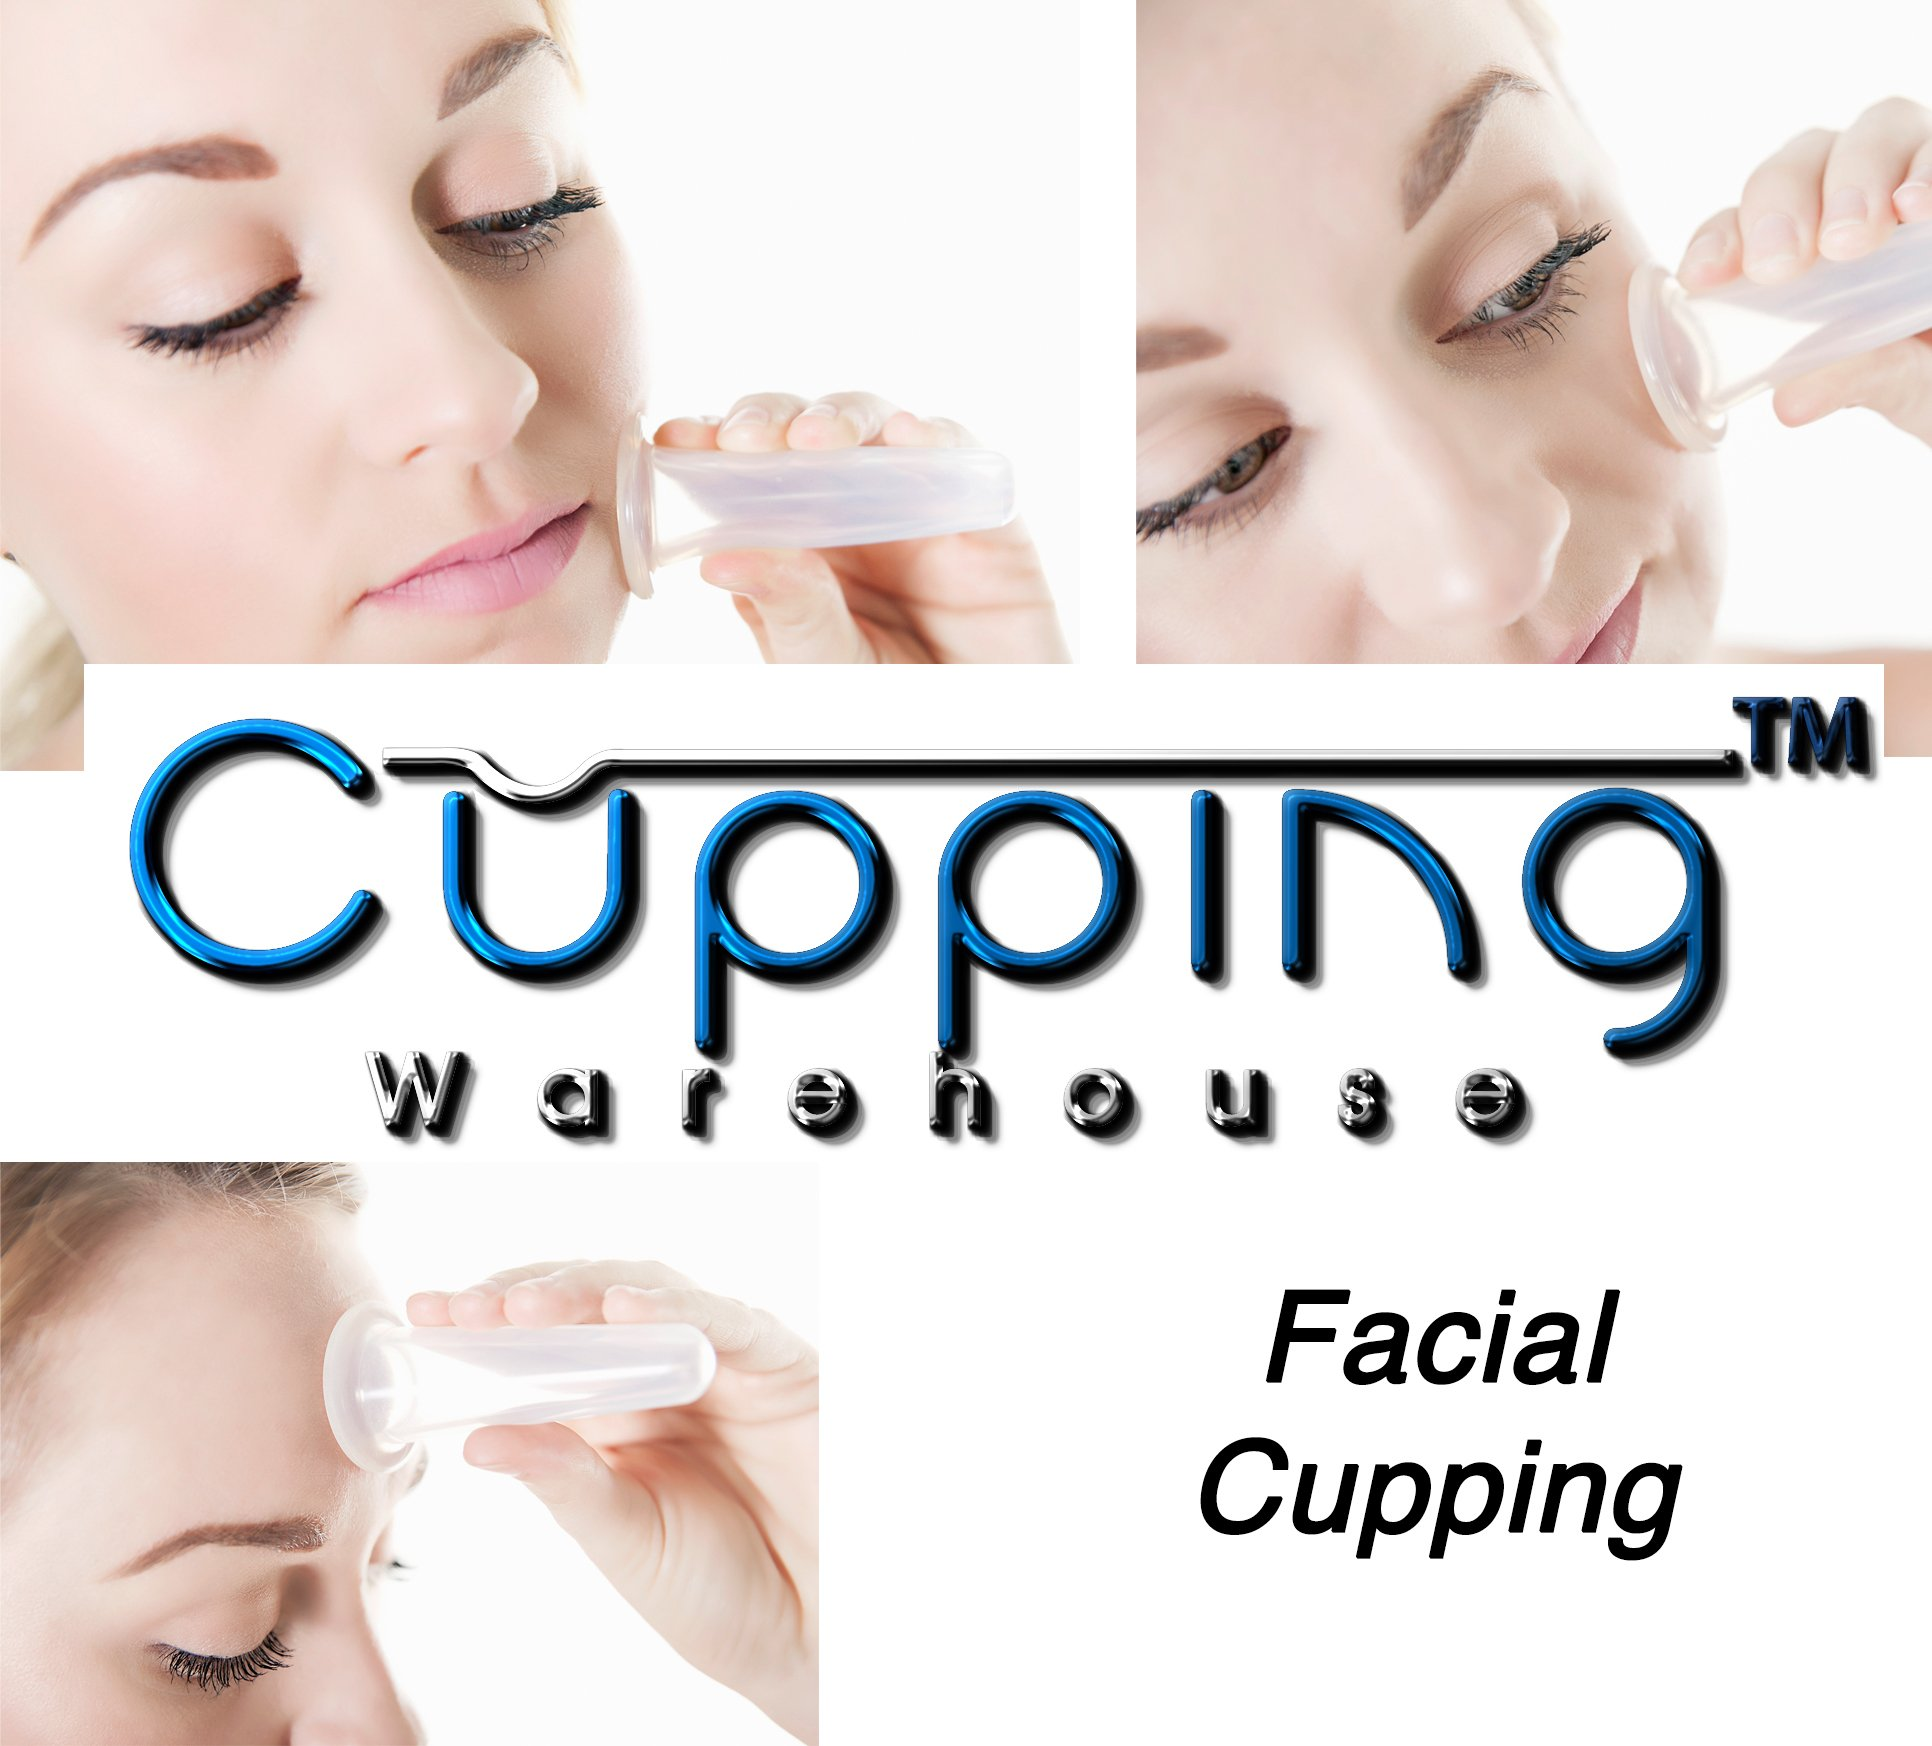 Classic 8 - Professional Medical Silicone Cupping Therapy Set with FREE Online Video's and Tutorials. Cupping Set by Cupping Warehouse TM by Cupping Warehouse TM (Image #5)